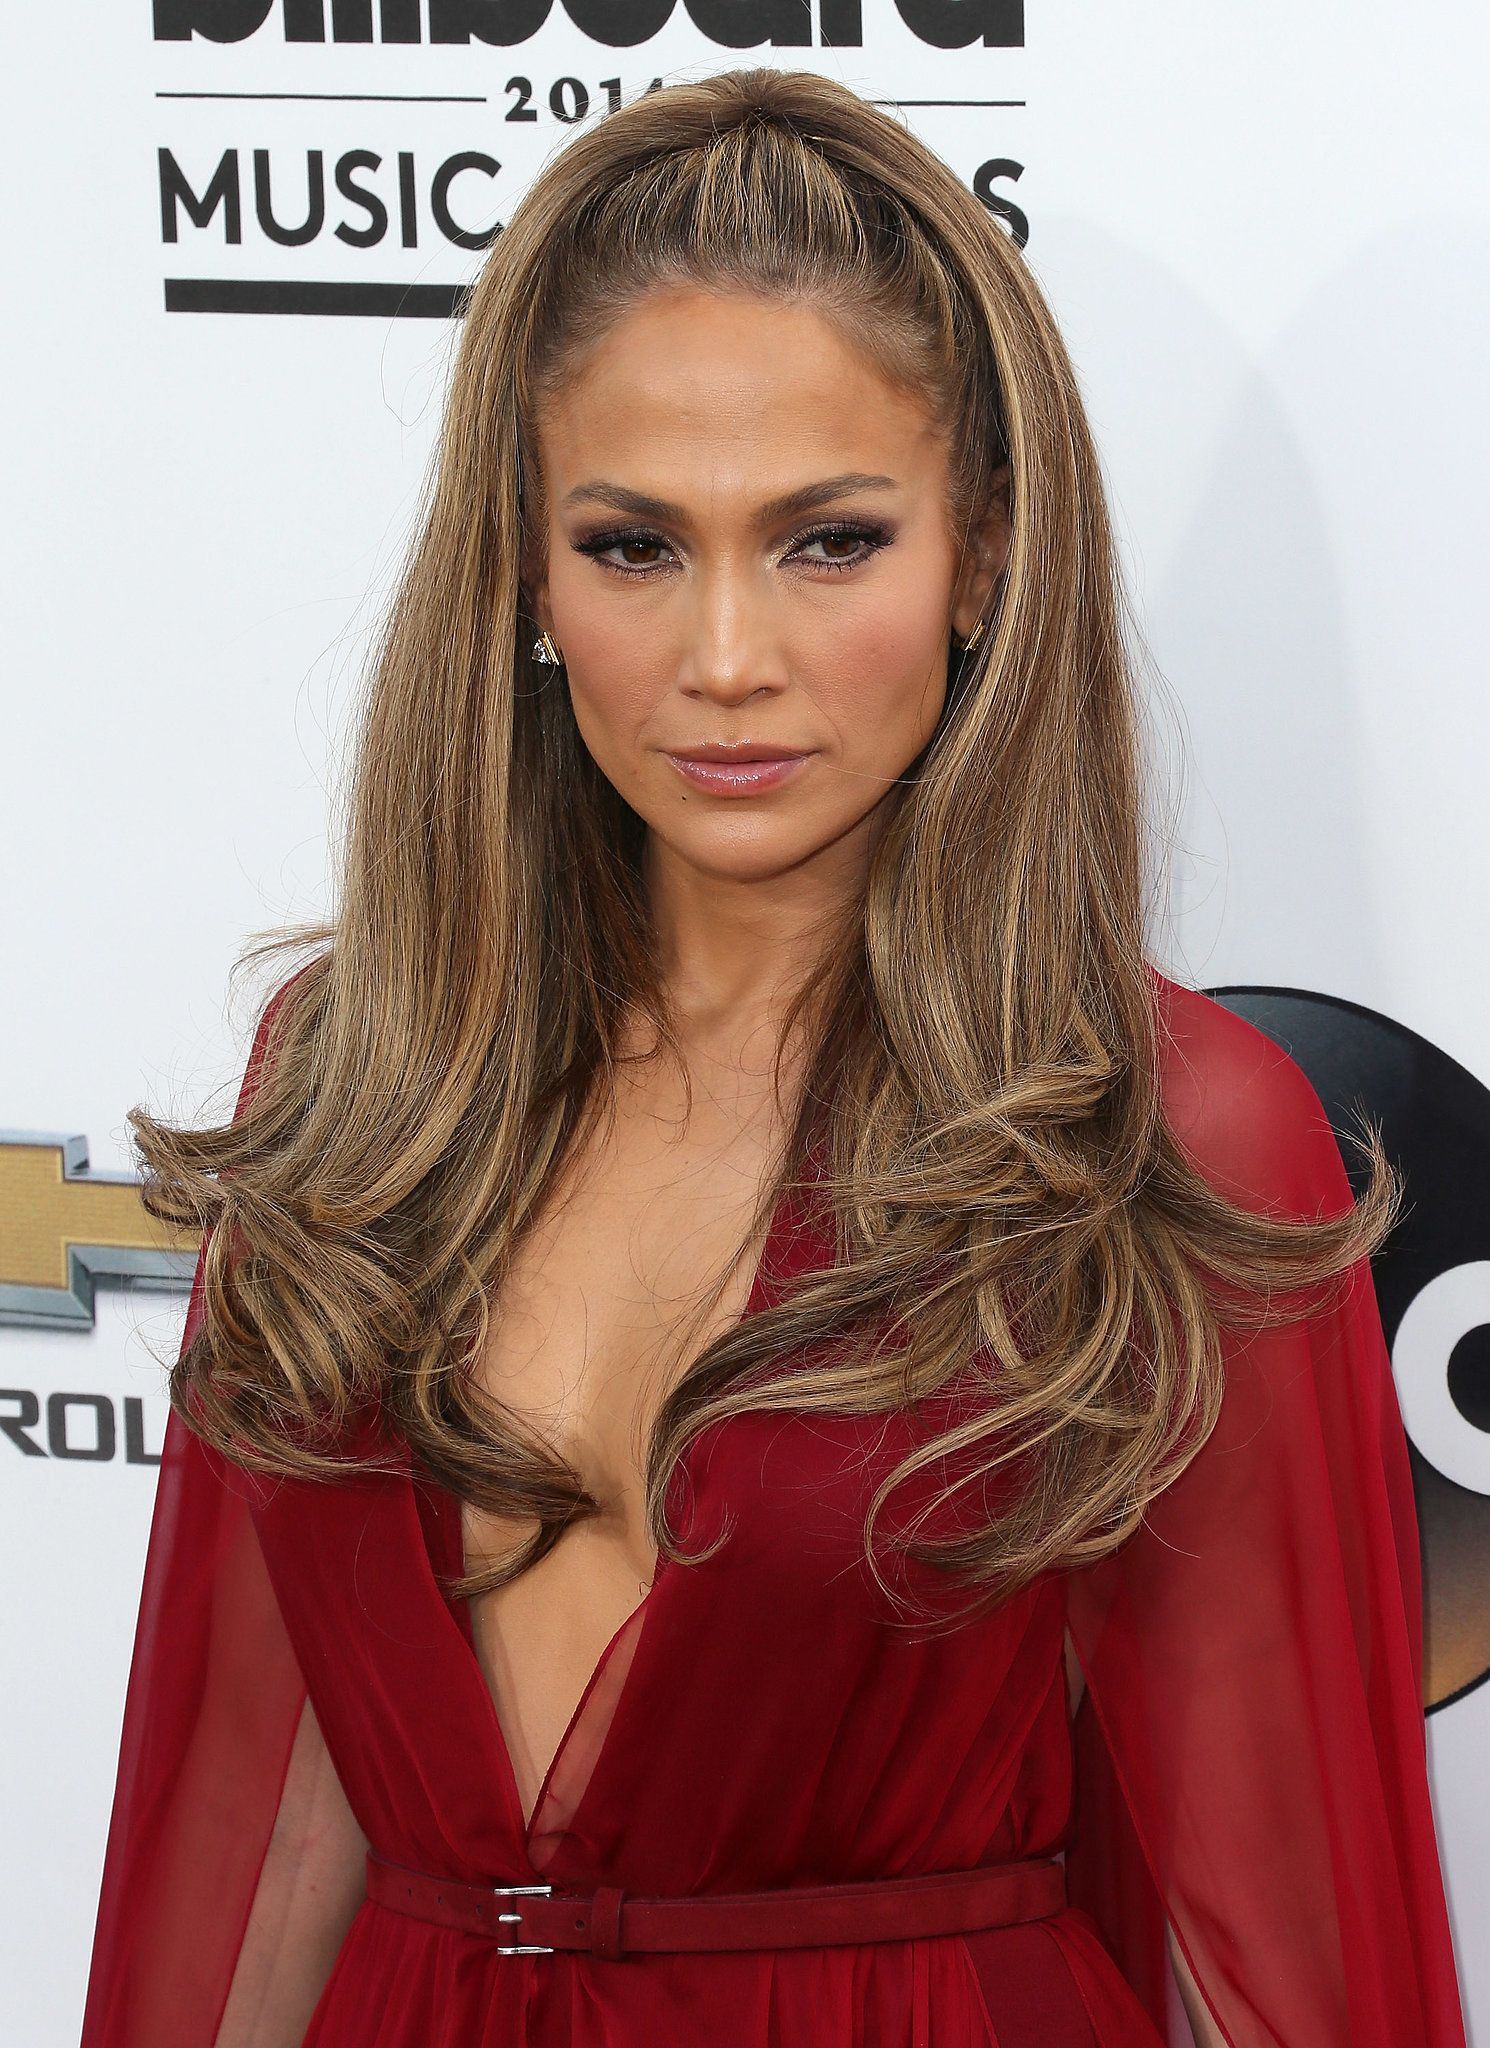 Jennifer Lopez | Celebrities on the Red Carpet | Pinterest ...